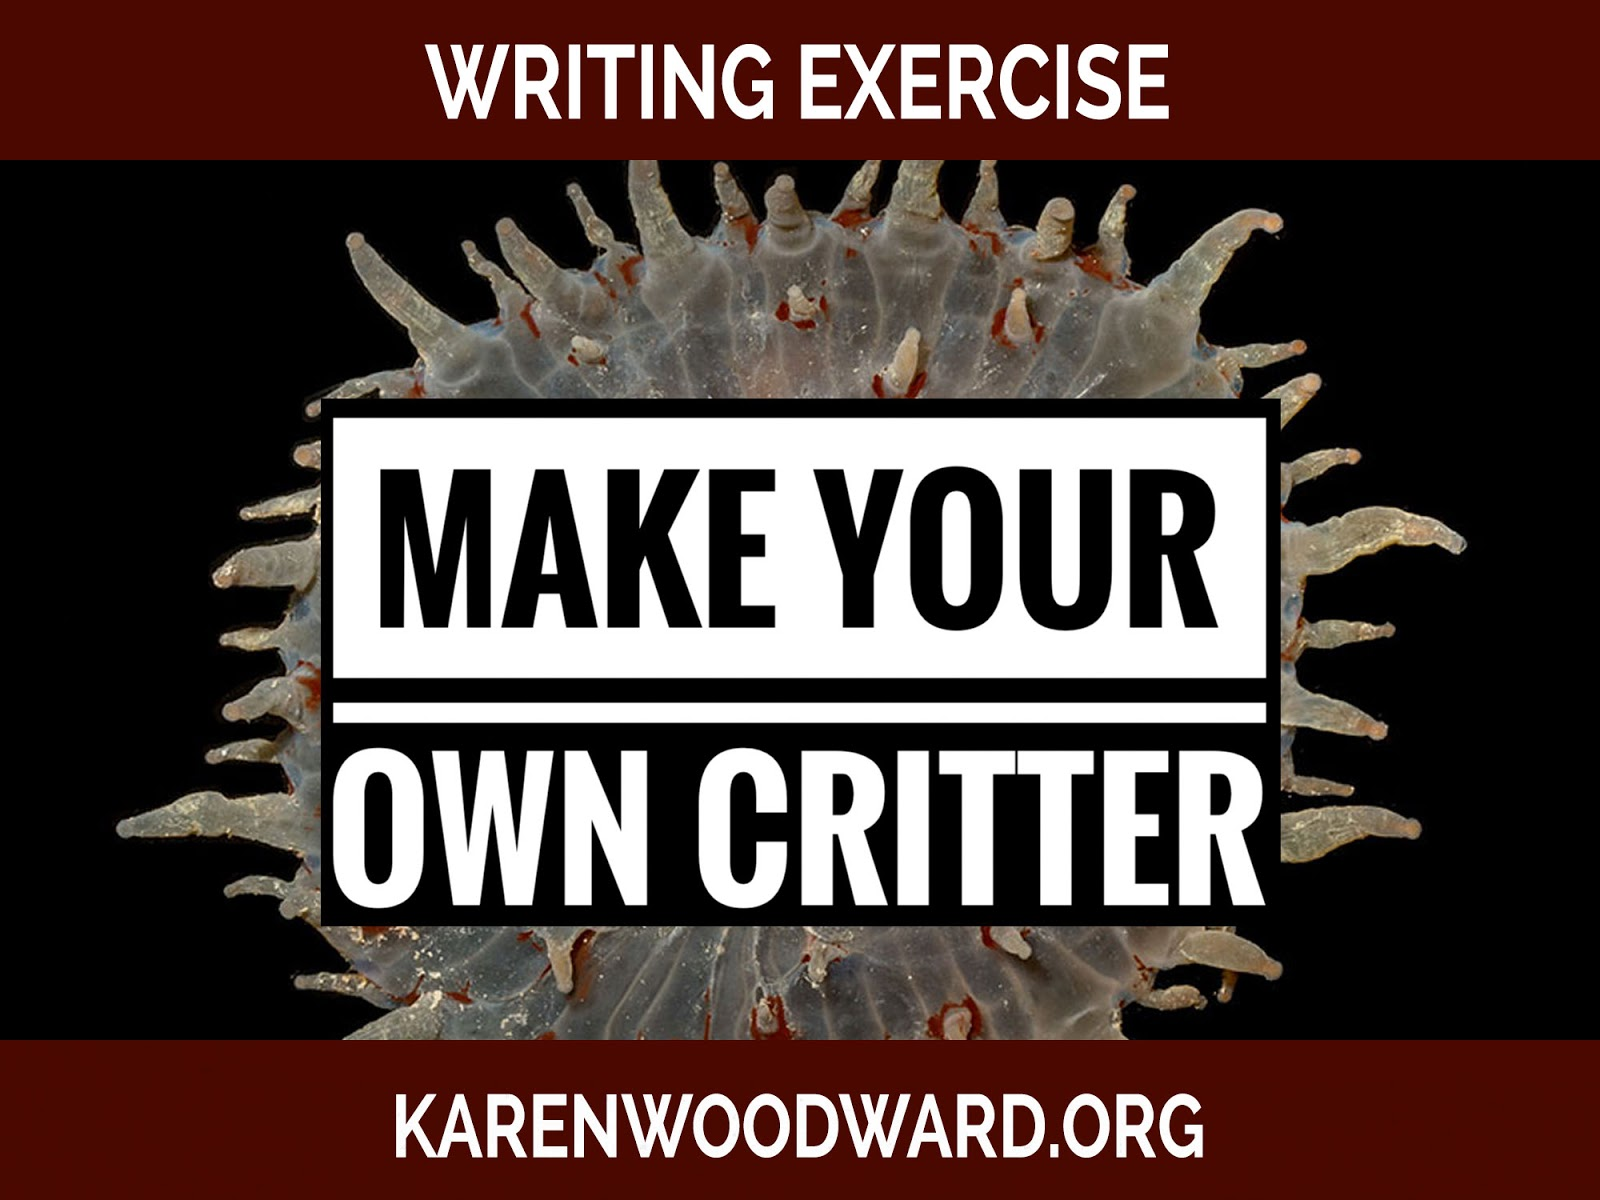 Writing Exercise: Make Your Own Critter!